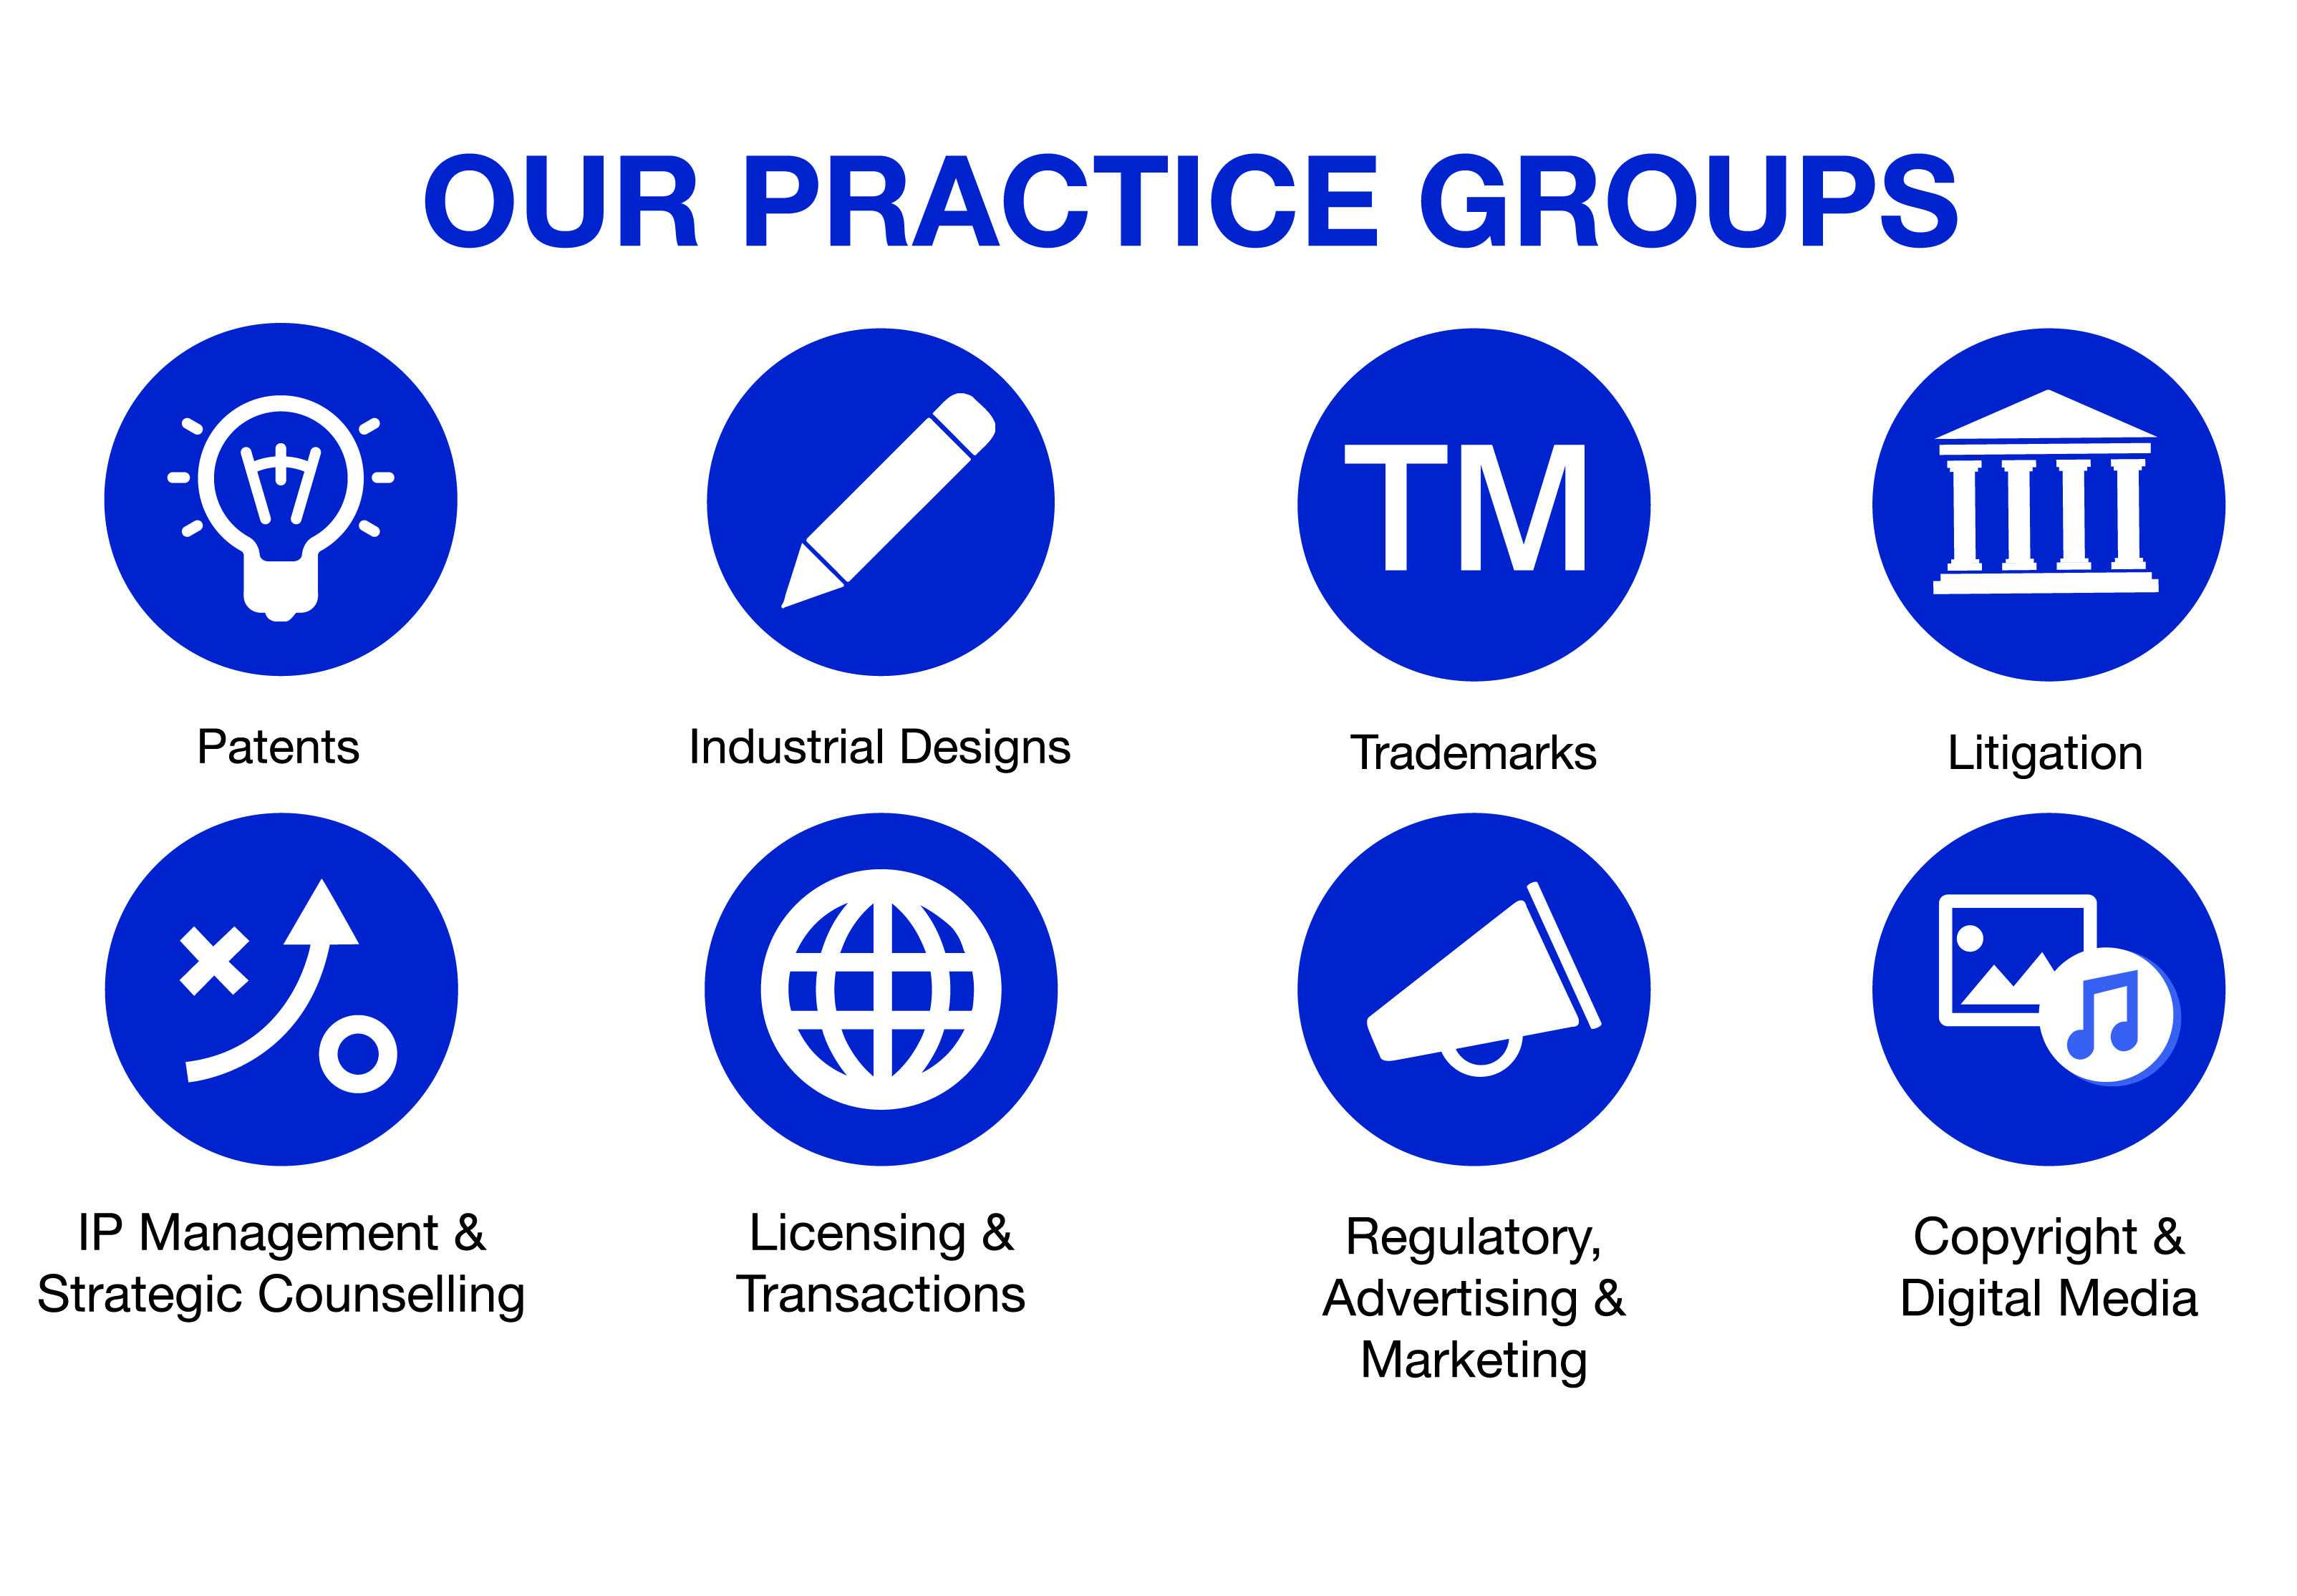 Our practice groups